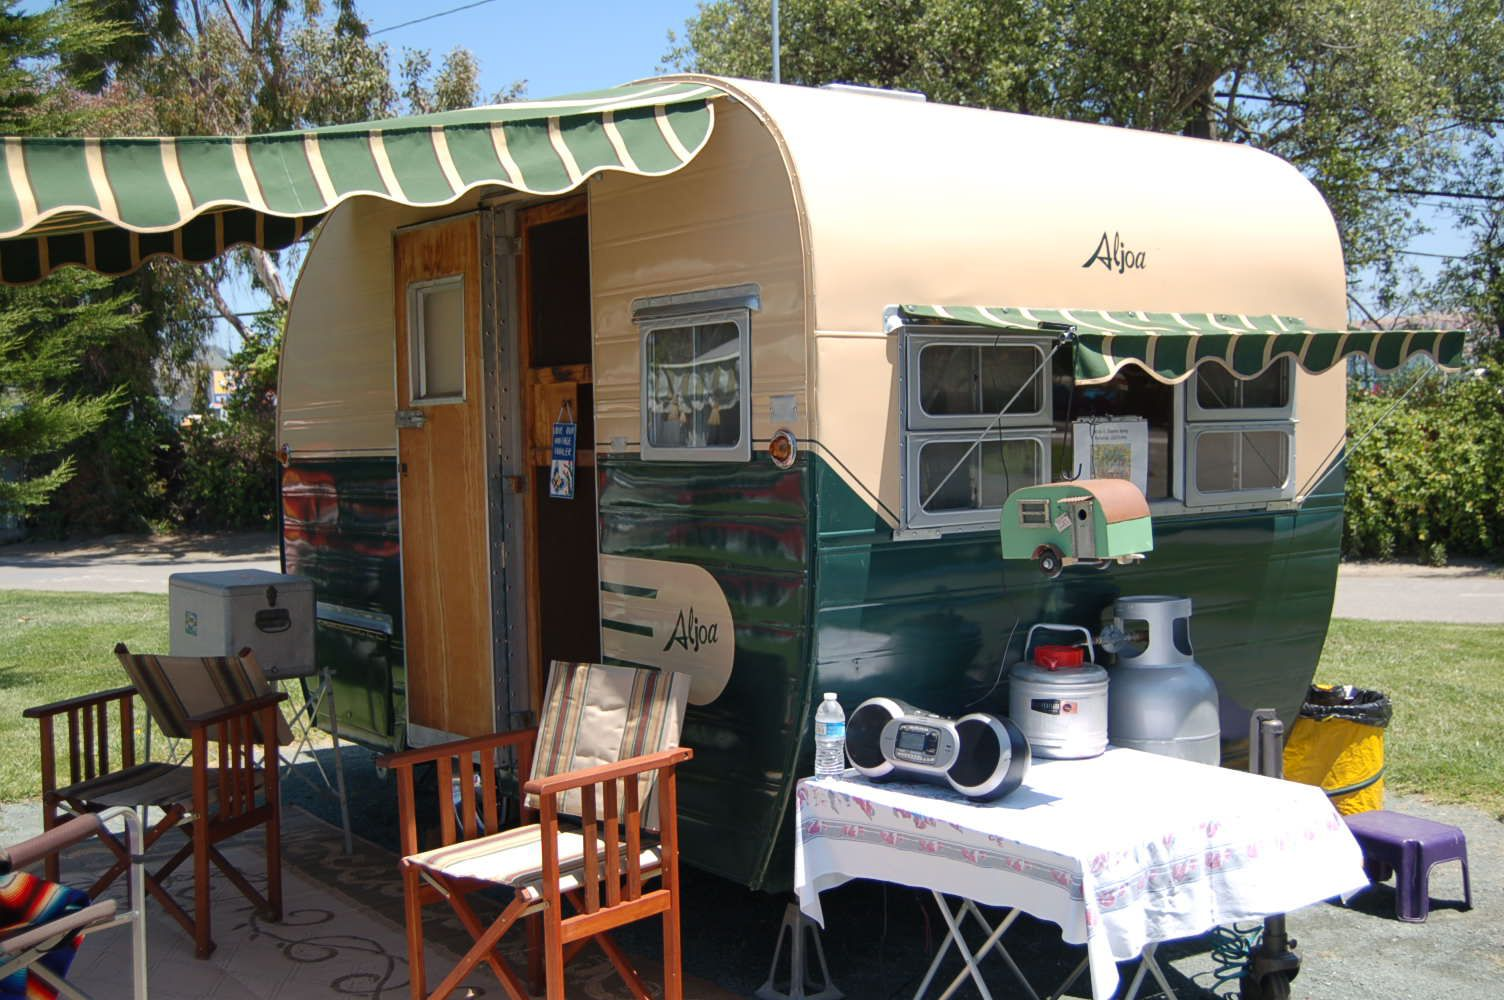 Restored Vintage 1955 Aljoa Travel Trailer Painted Green